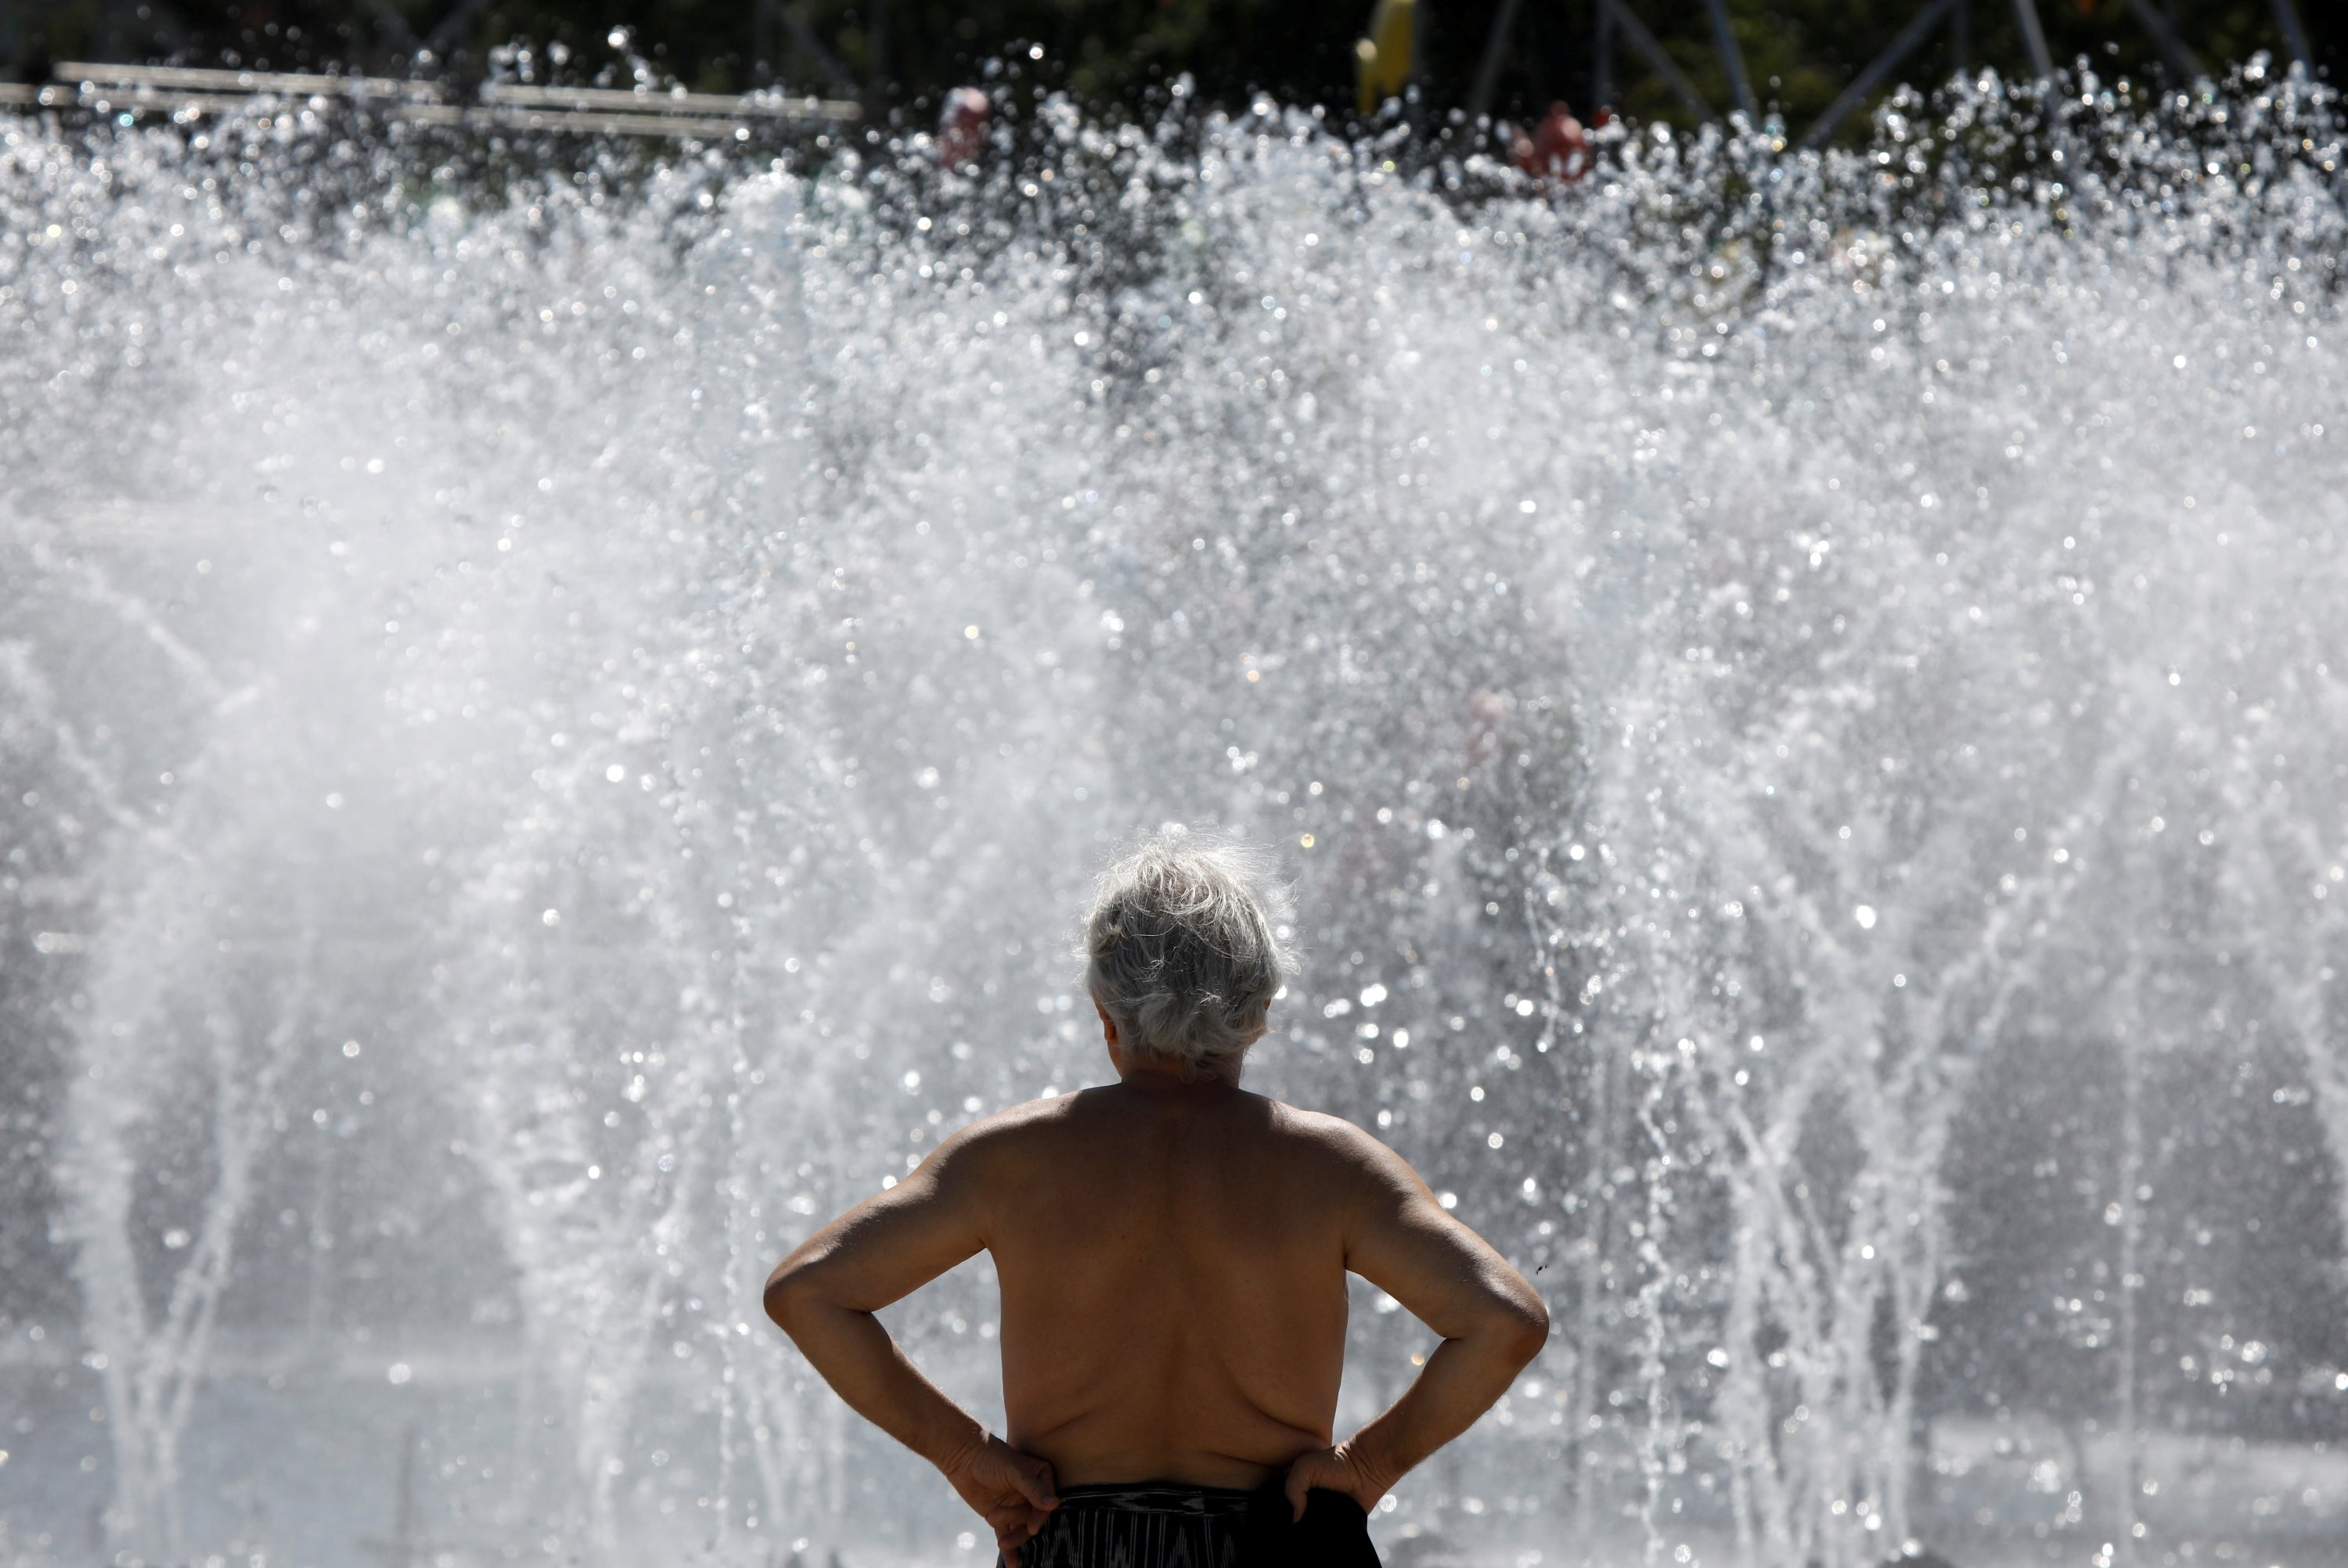 A man sunbathes during hot summer weather in Warsaw, Poland August 12, 2020. (REUTERS Photo)